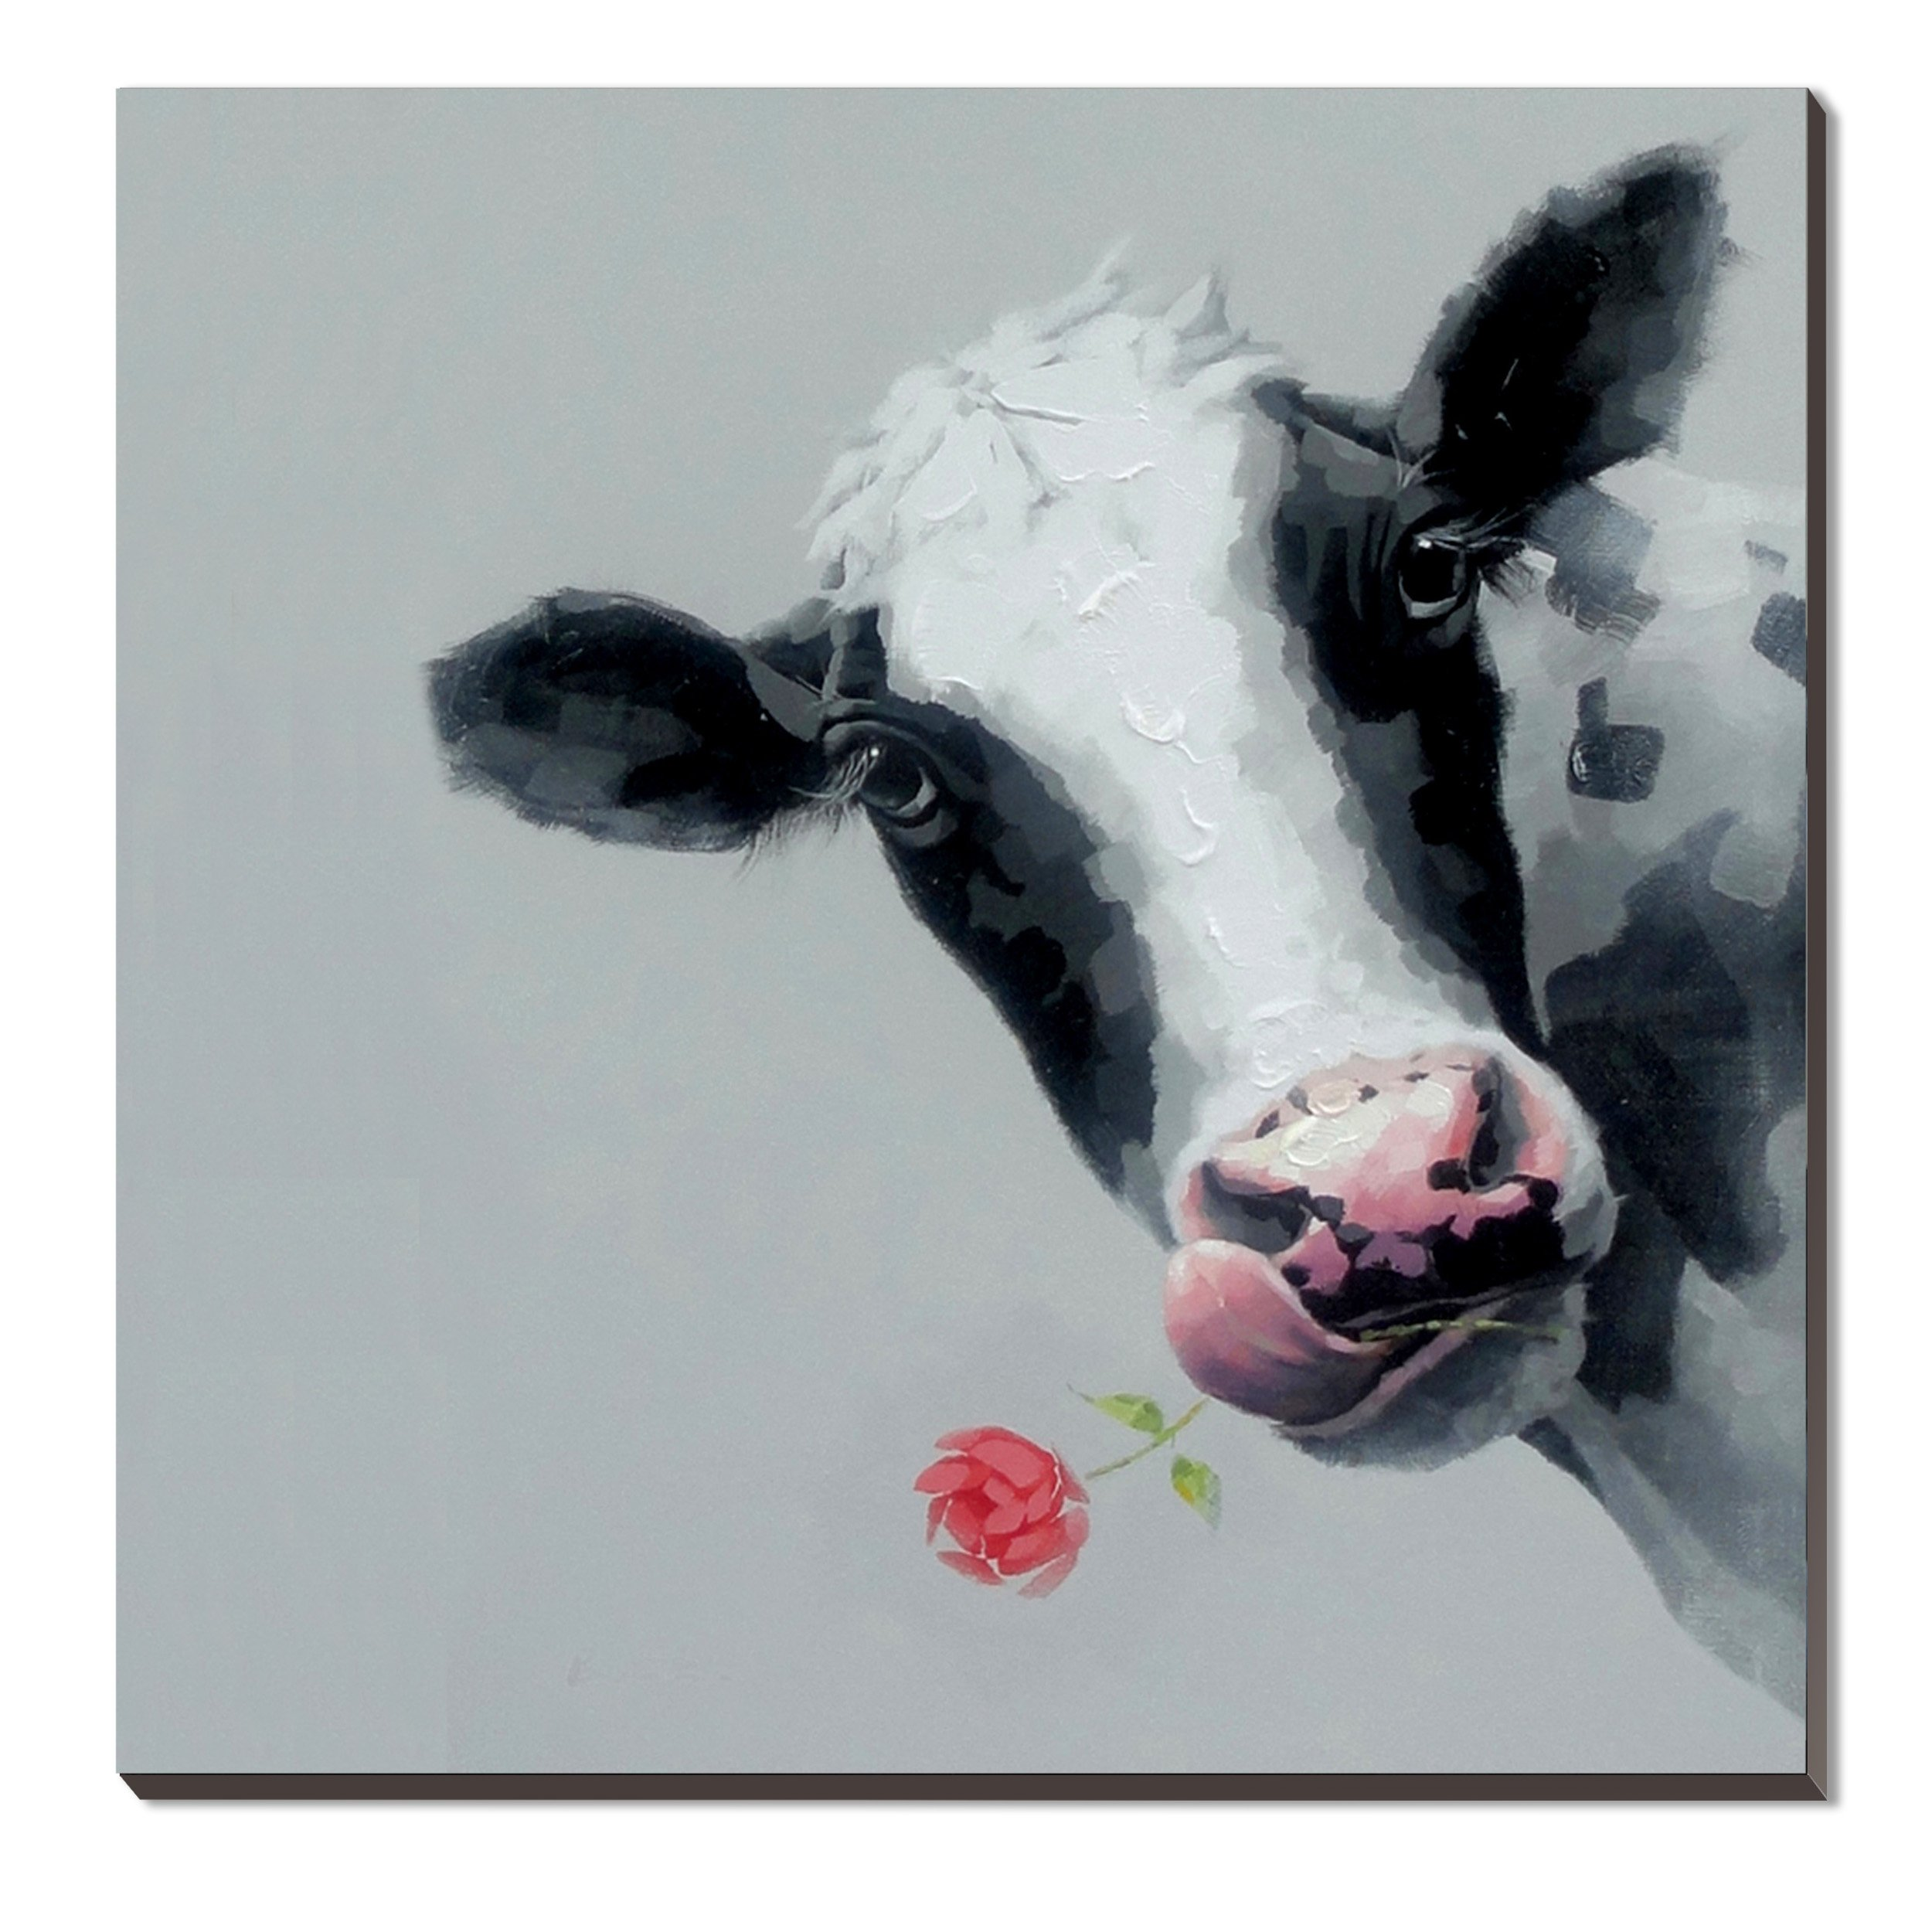 3Hdeko-Modern Animal Wall Art 100% Hand-Painted Oil Painting on Canvas Cattle 30x30inch Home Decoration for Living Room or Hotel,Stretched- Ready to Hang!